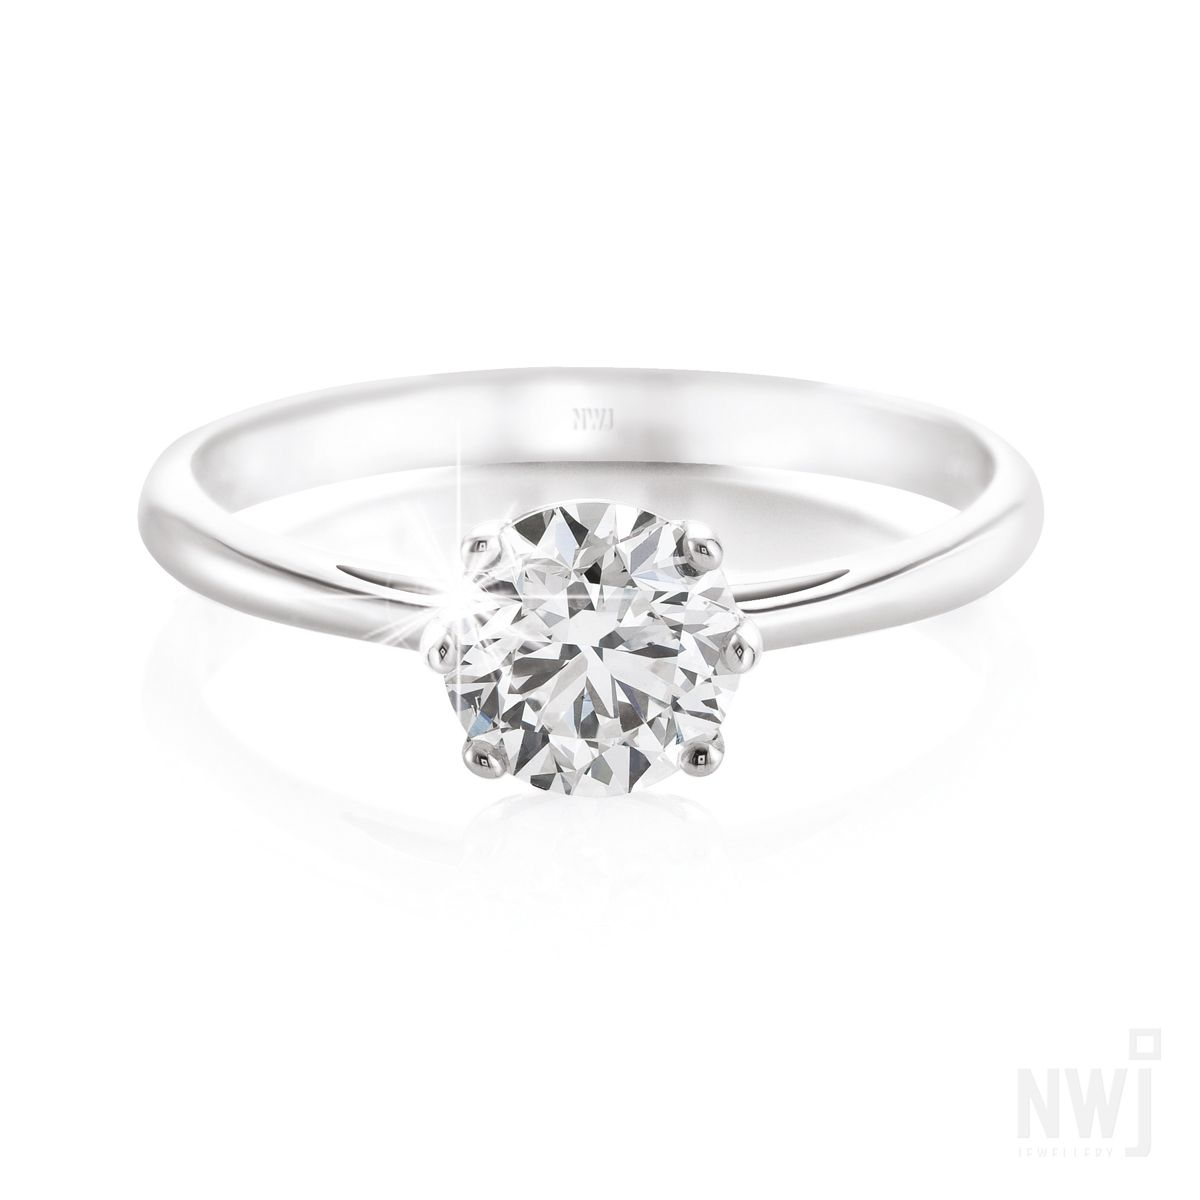 f131265ae5df Diamond Catalogue  Gorgeous 18ct White Gold Ring With Diamond By NWJ  Valid  for 2013  myNWJwishlist